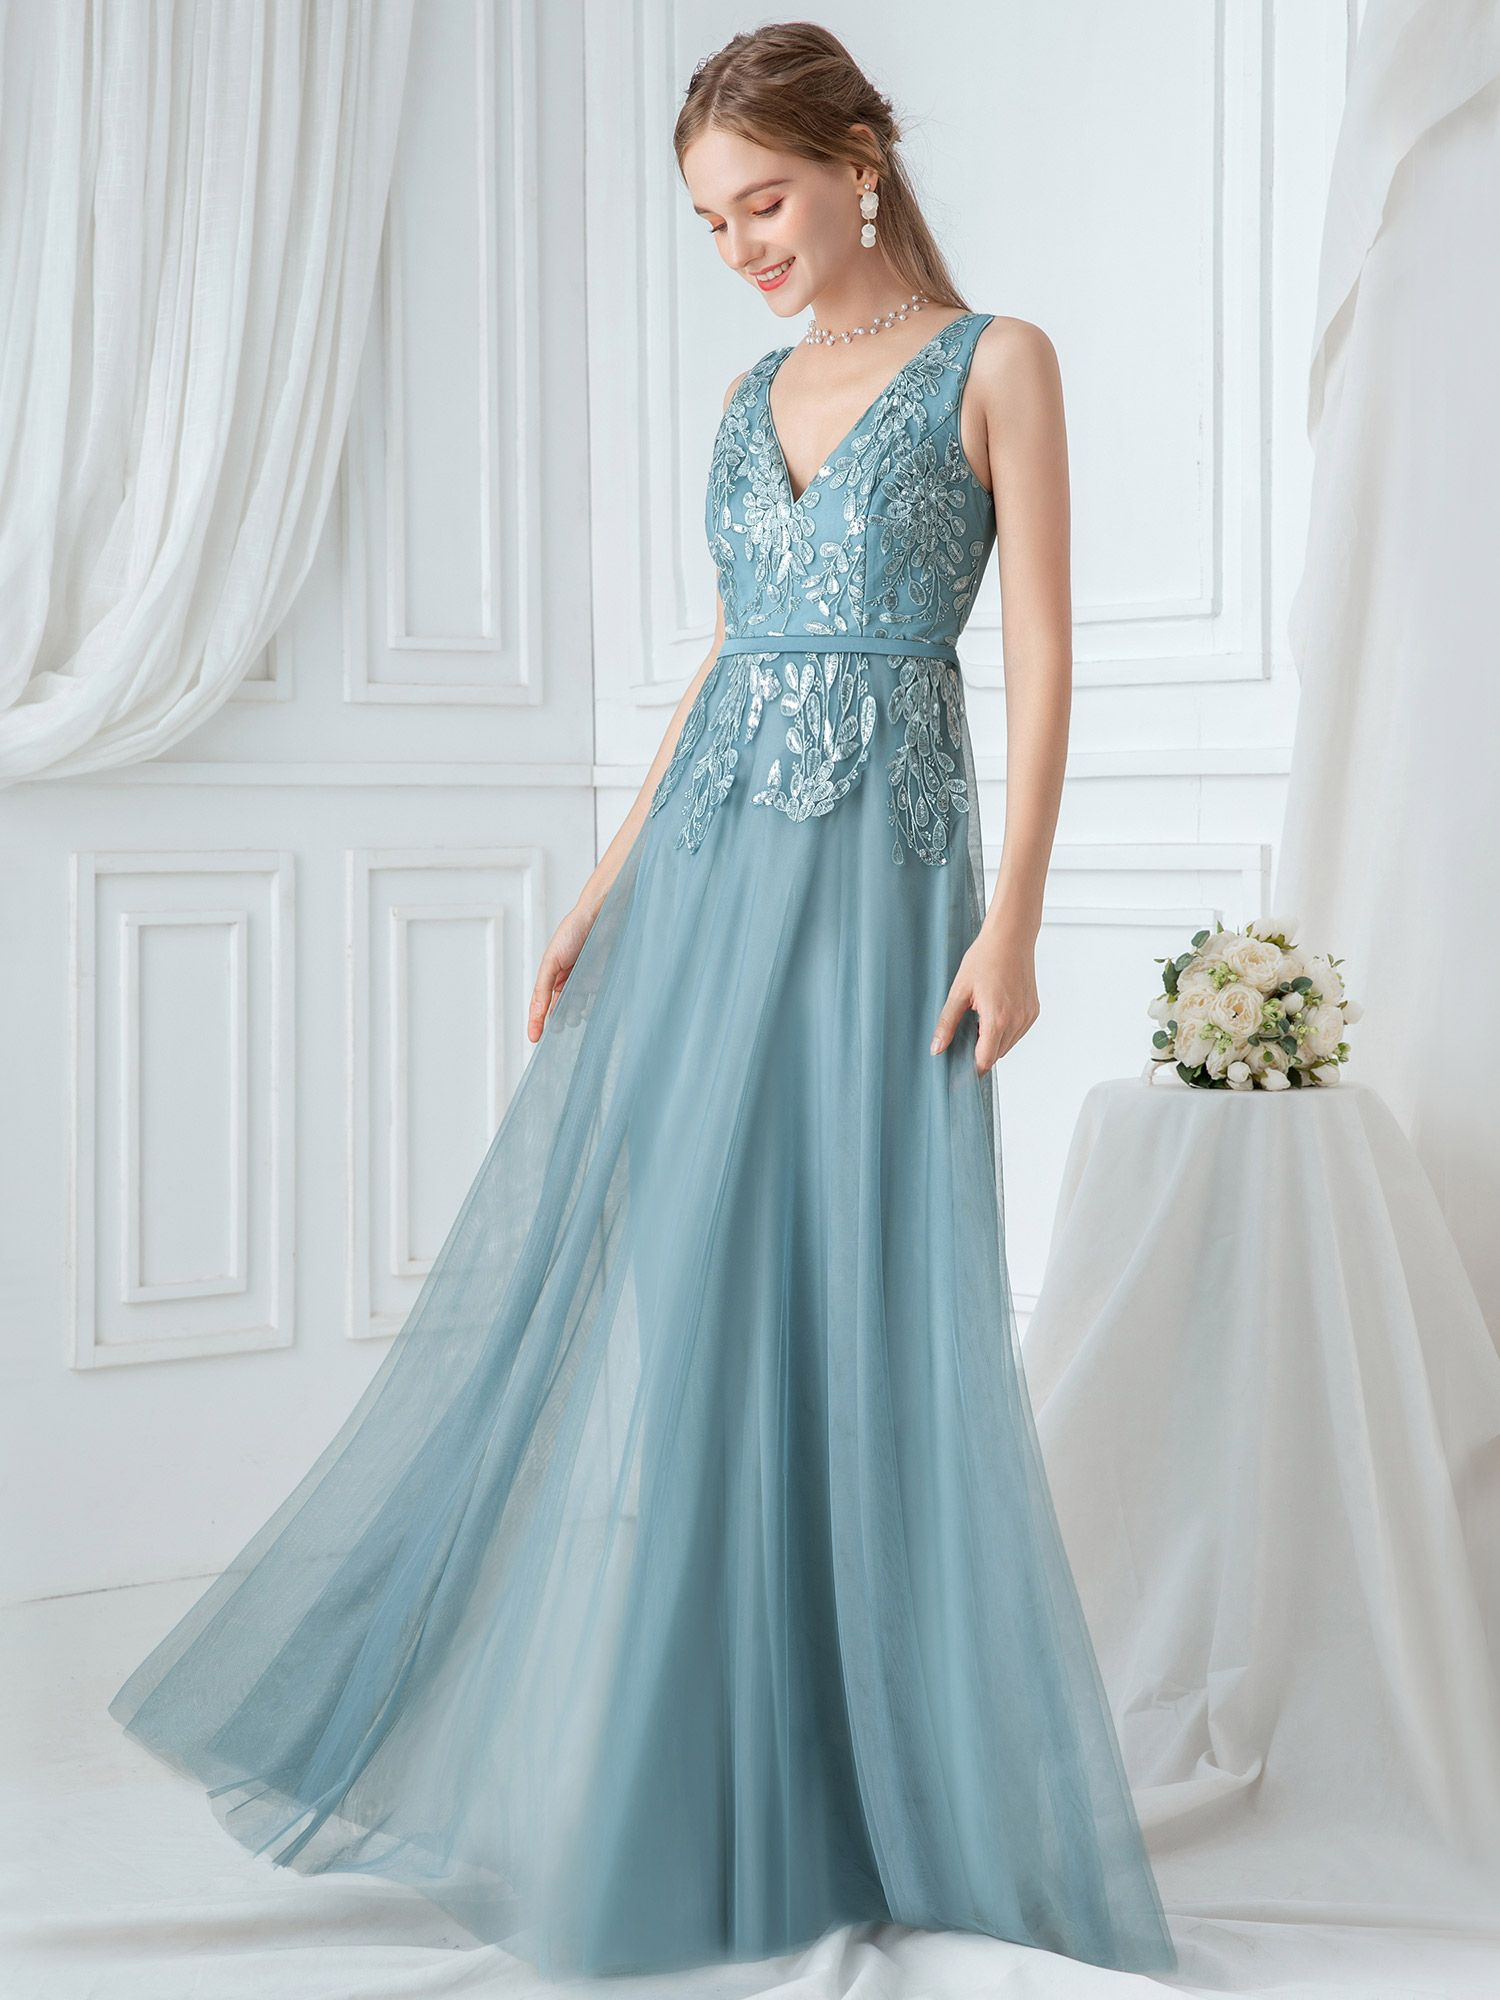 Ever Pretty Ever Pretty Womens Embroidery A Line Bridal Gowns Wedding Dresses For Bride 00845 Us4 Walmart Com A Line Bridal Gowns Tulle Bridesmaid Dress Blue Bridesmaid Dresses [ 2000 x 1500 Pixel ]